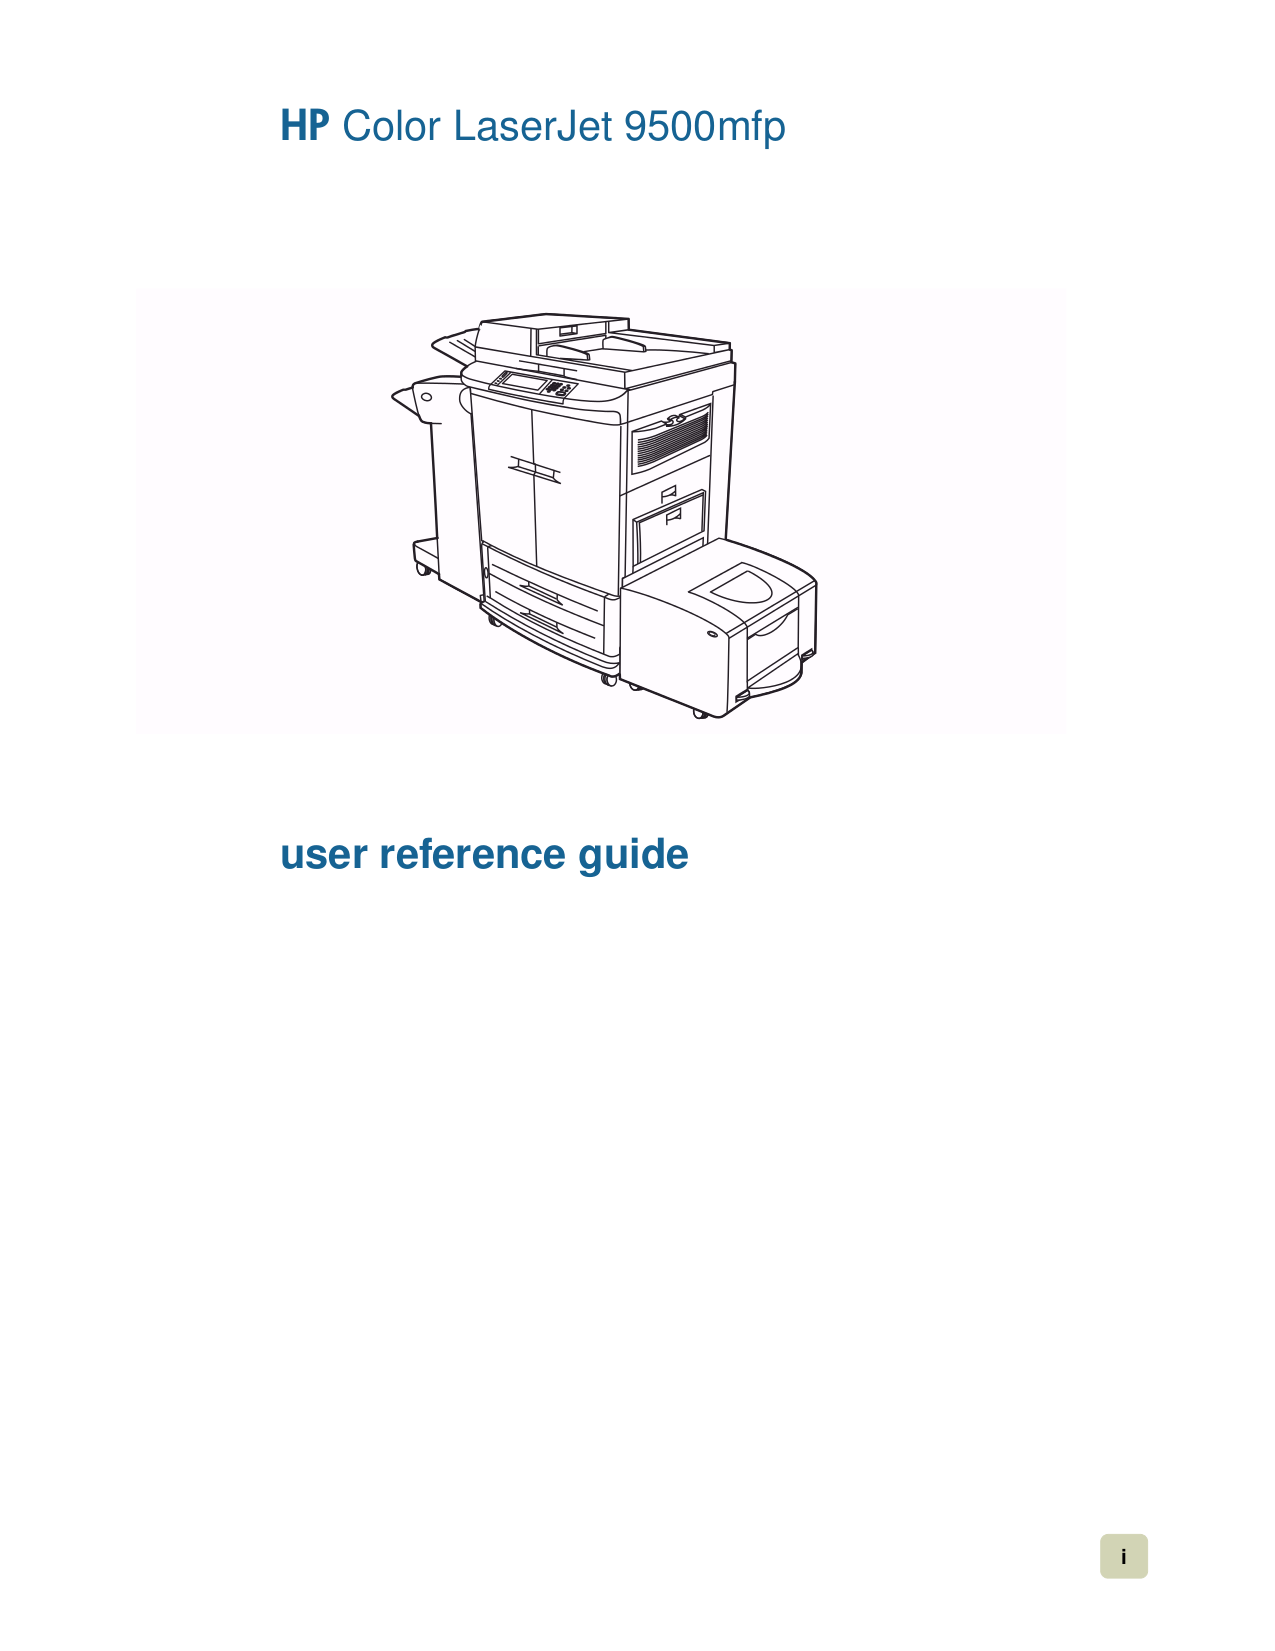 PDF manual for HP Multifunction Printer Laserjet,Color